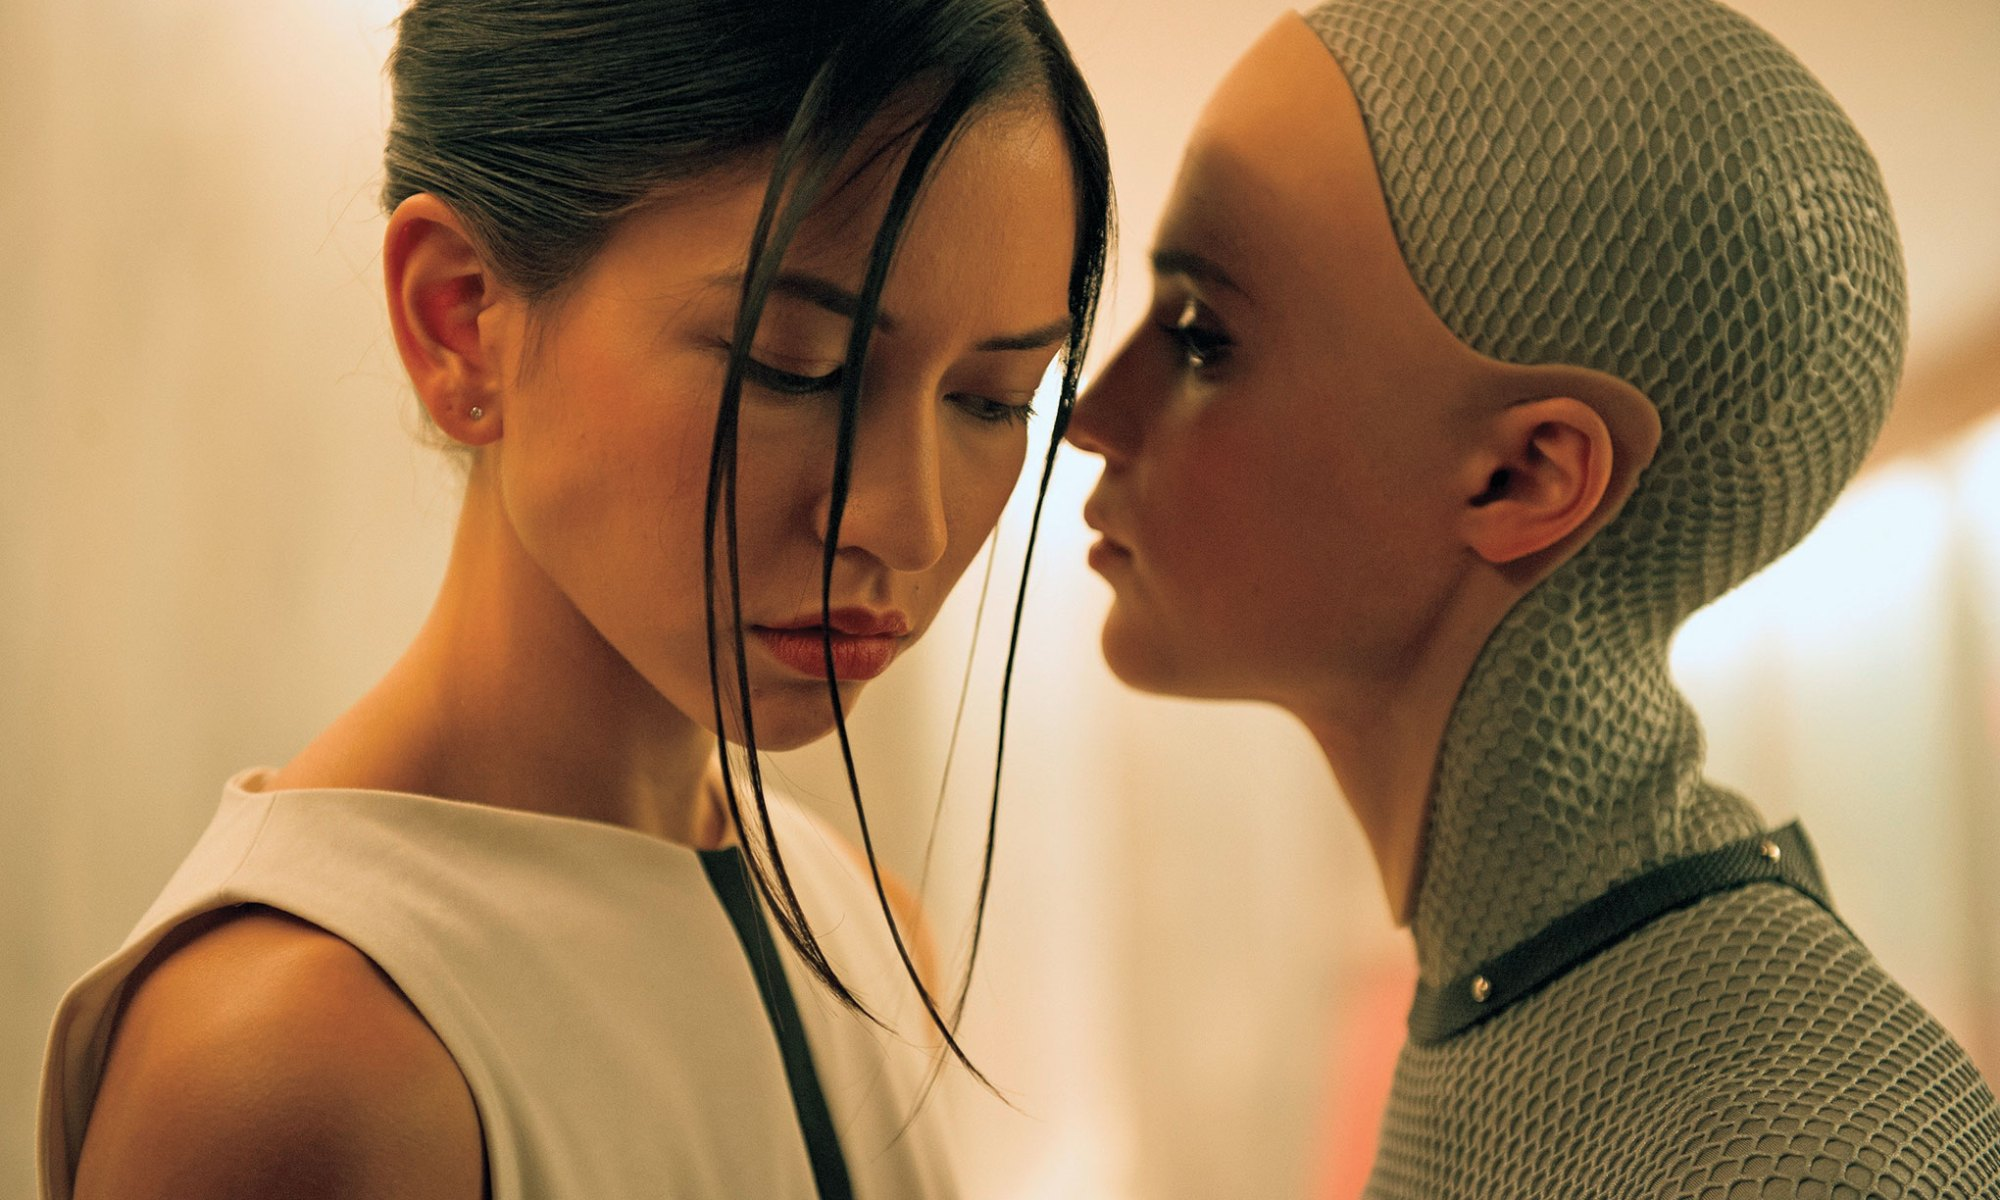 Abused Movies Porn Video ex-machina abuses women to show that abuse is sick – the